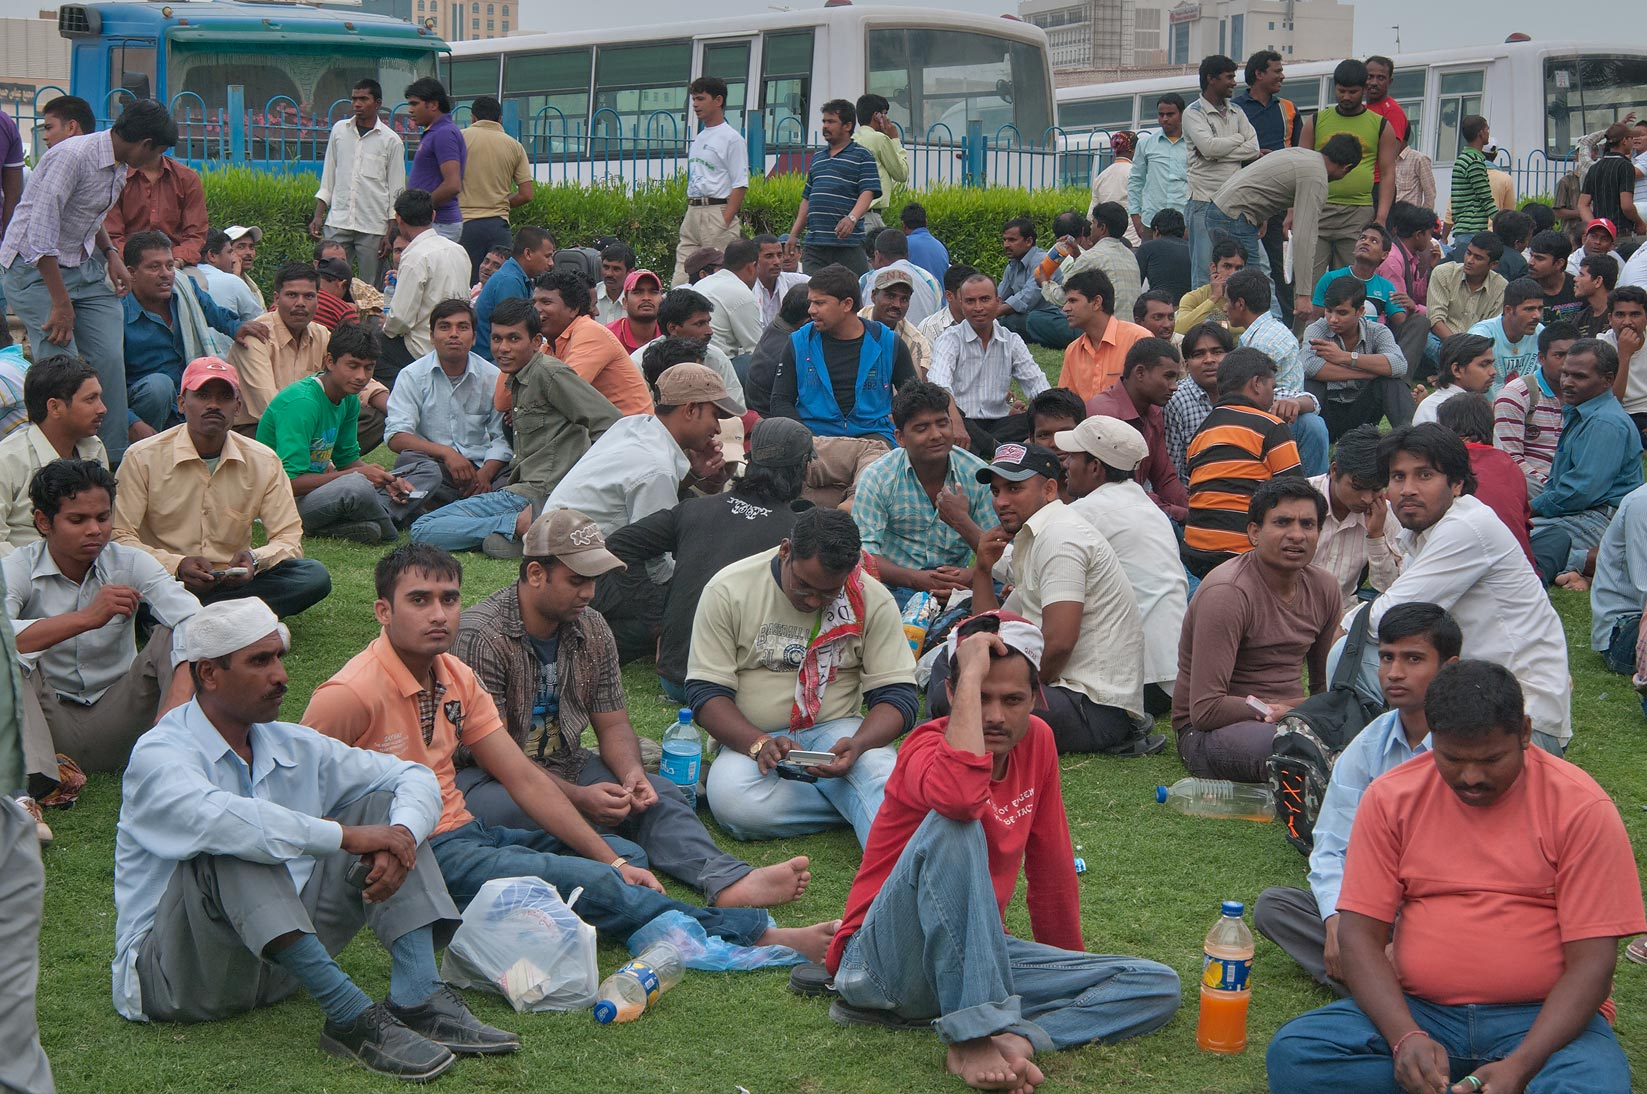 Workers sitting on a lawn on Friday evening at Central Bus Station Al Ghanim. Doha, Qatar